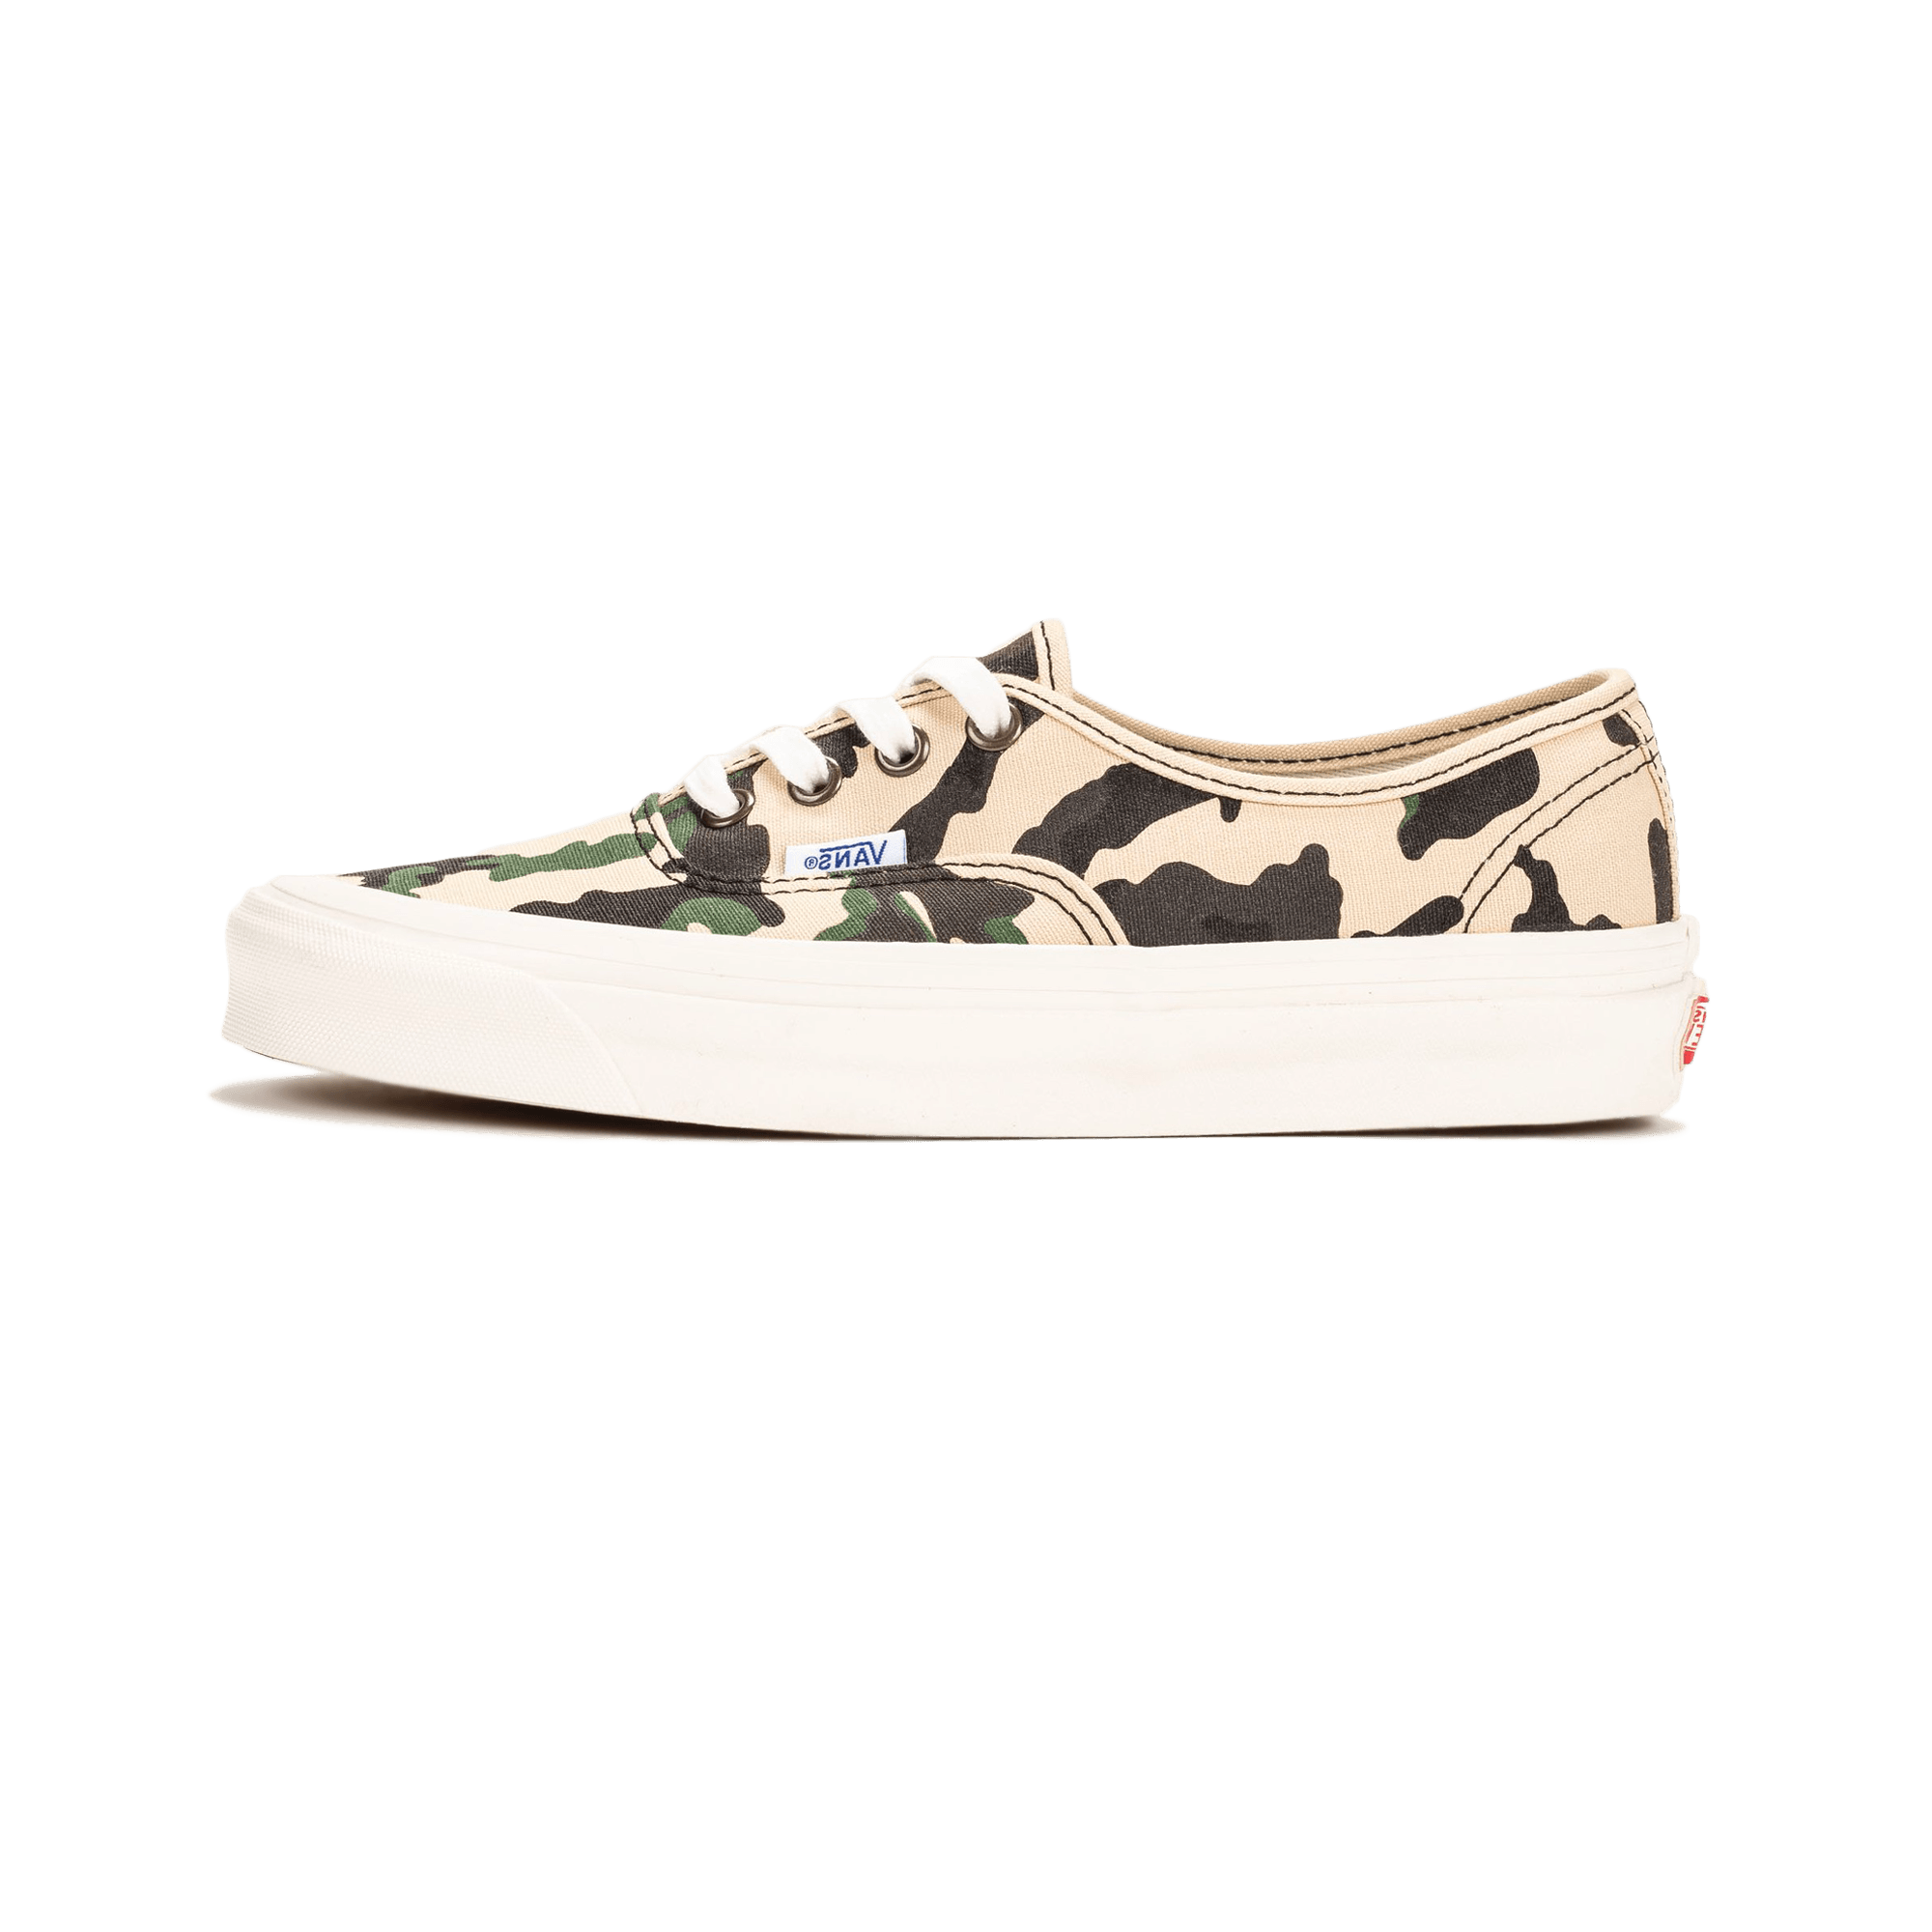 aed4a41a17d45 Vans Authentic 44 Dx Anaheim Factory og camo - Unisex ...